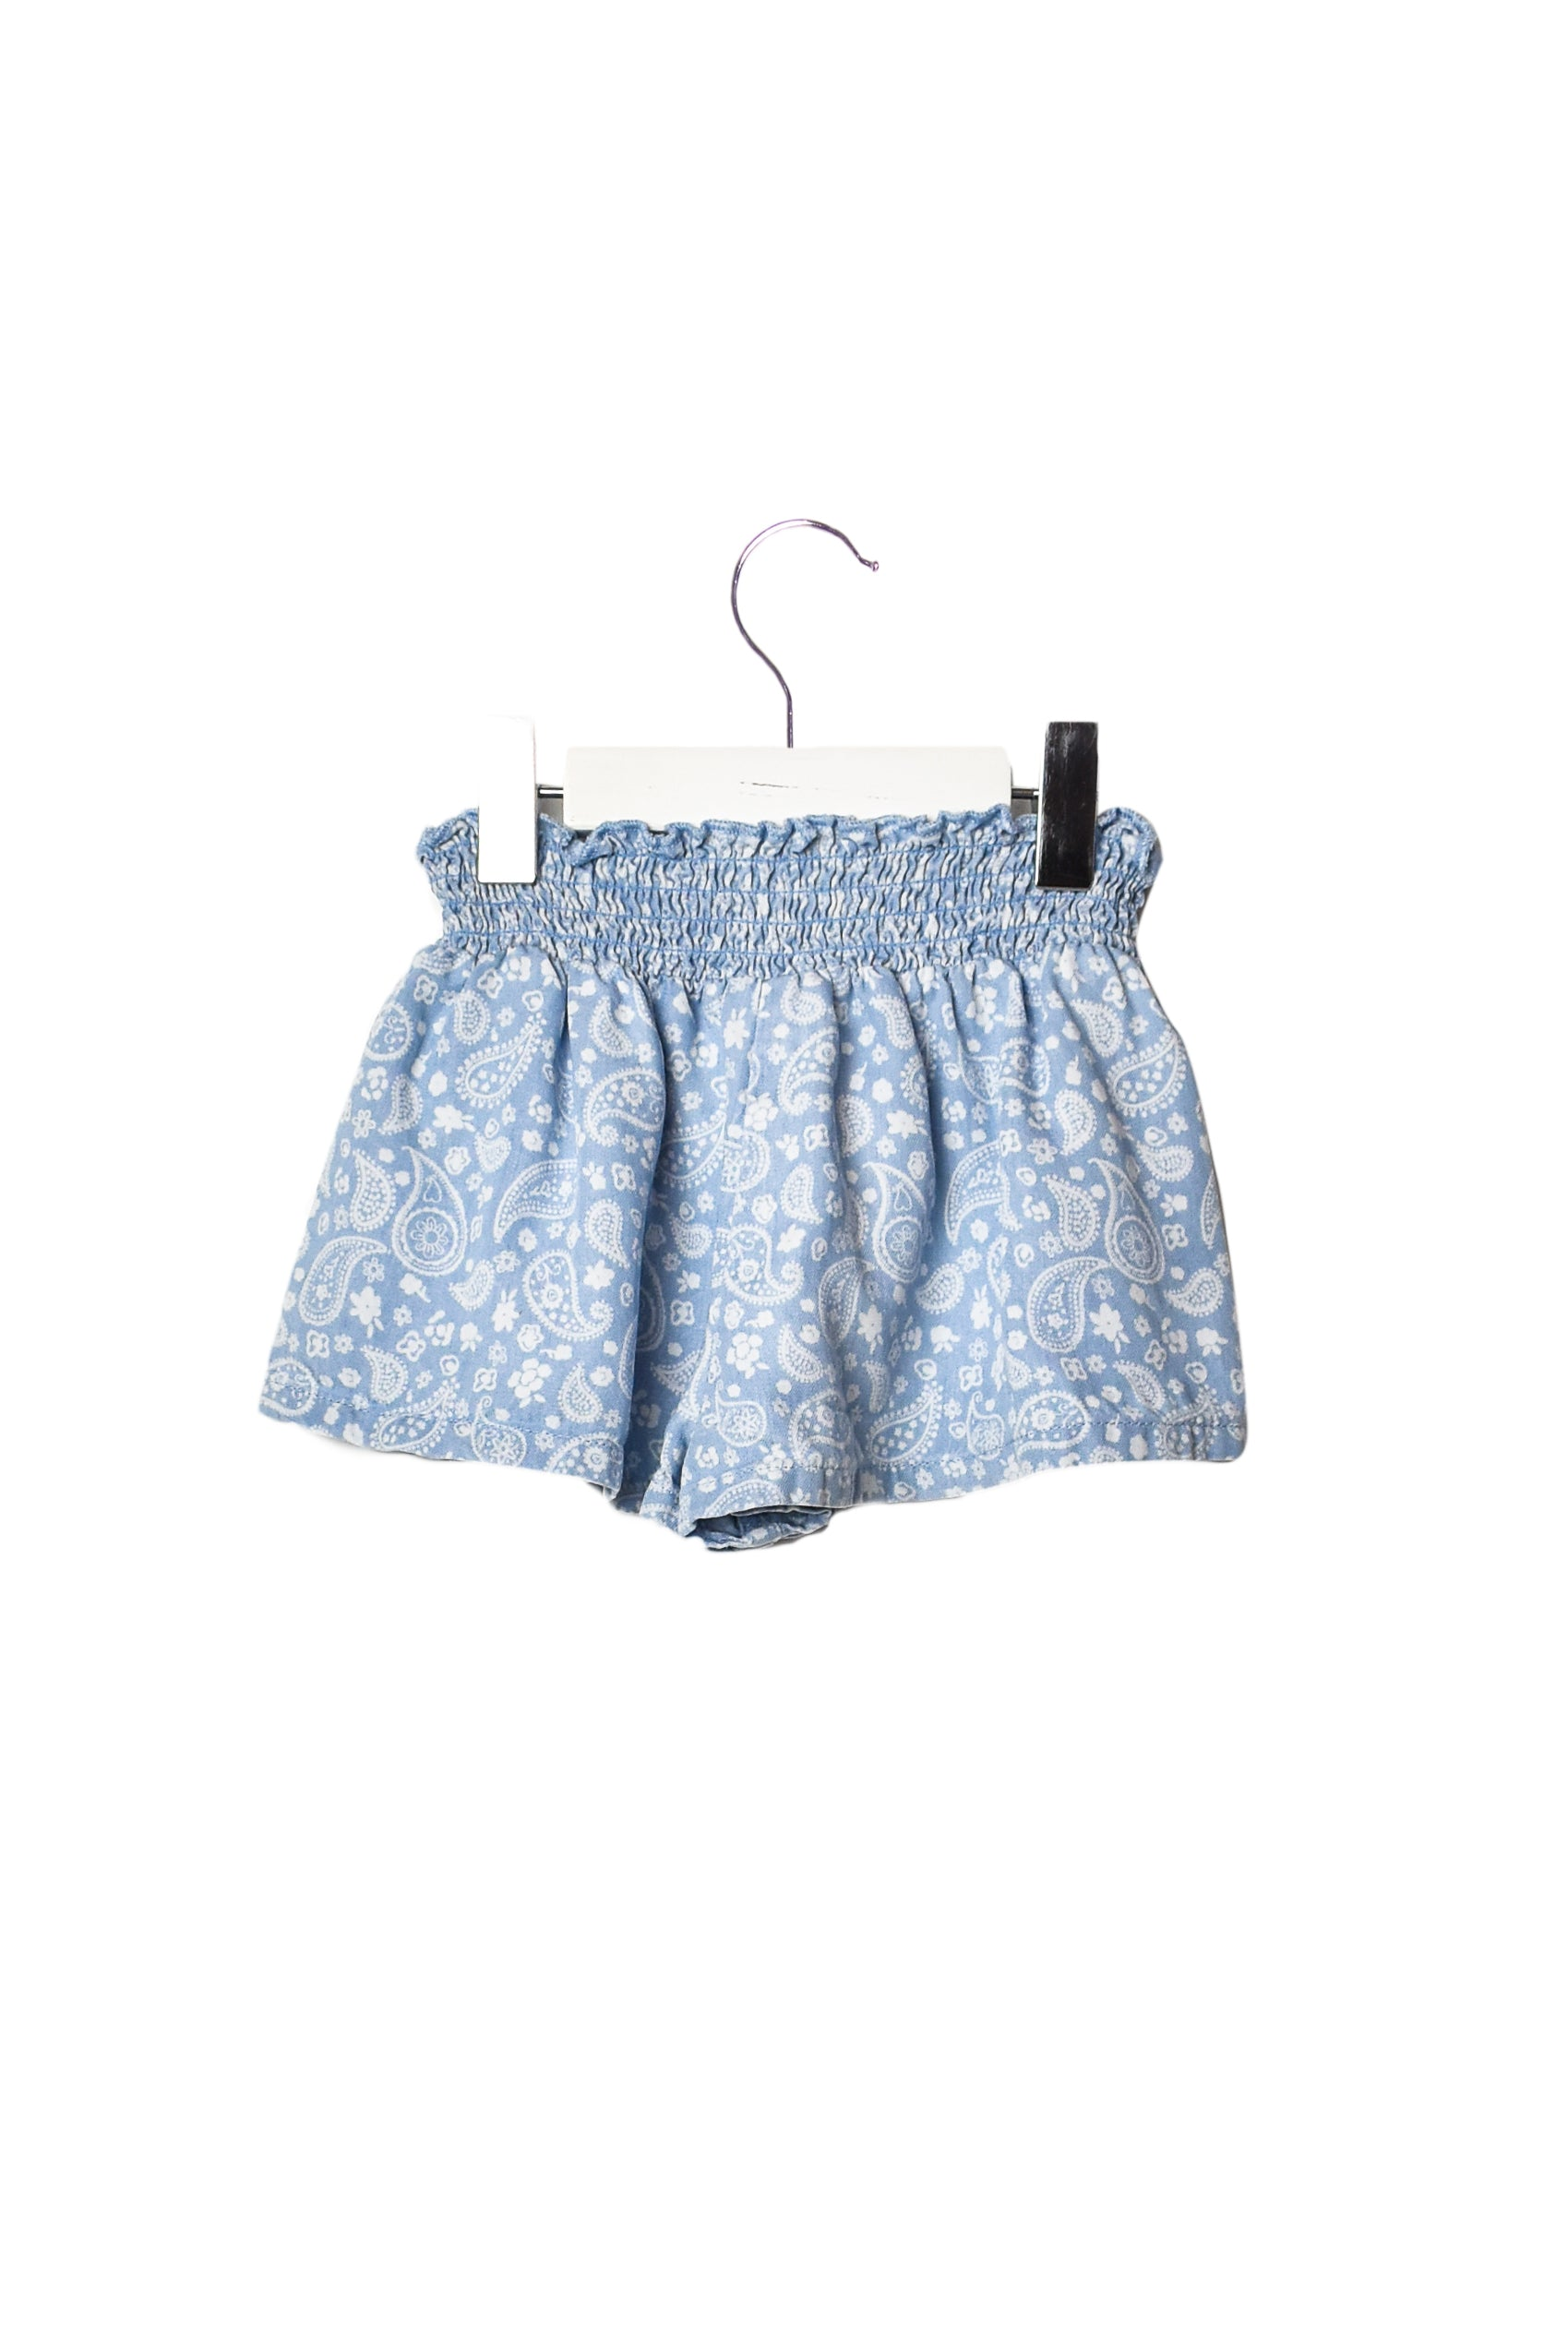 10007623 Seed Kids~ Shorts 2-3T at Retykle